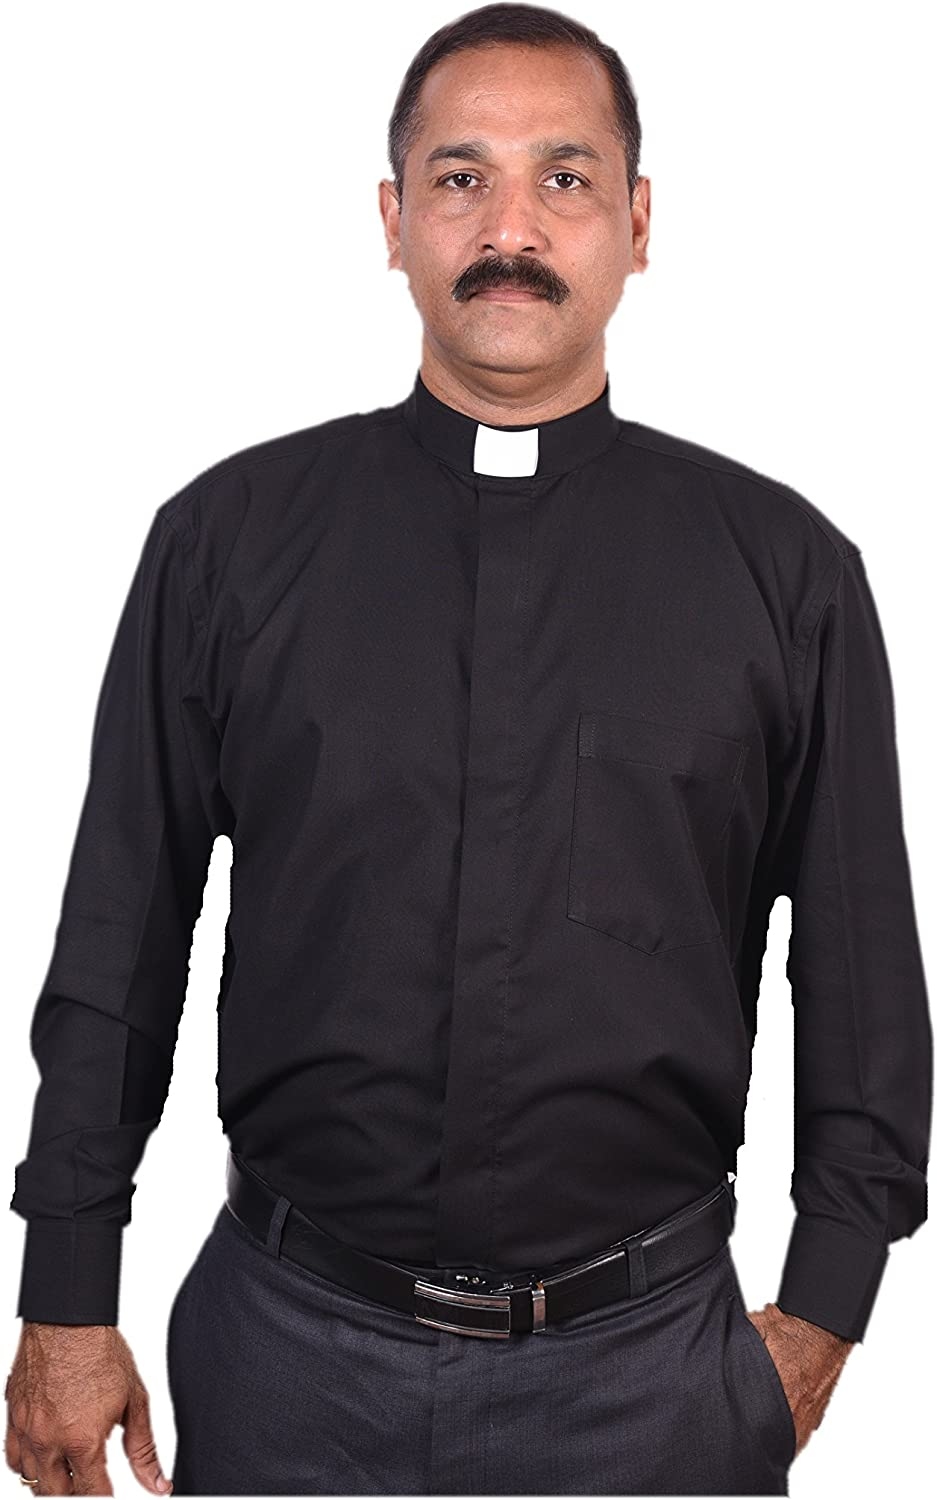 Clerical Clergy Vicar Priest Collar Men's Shirts Long Sleeves